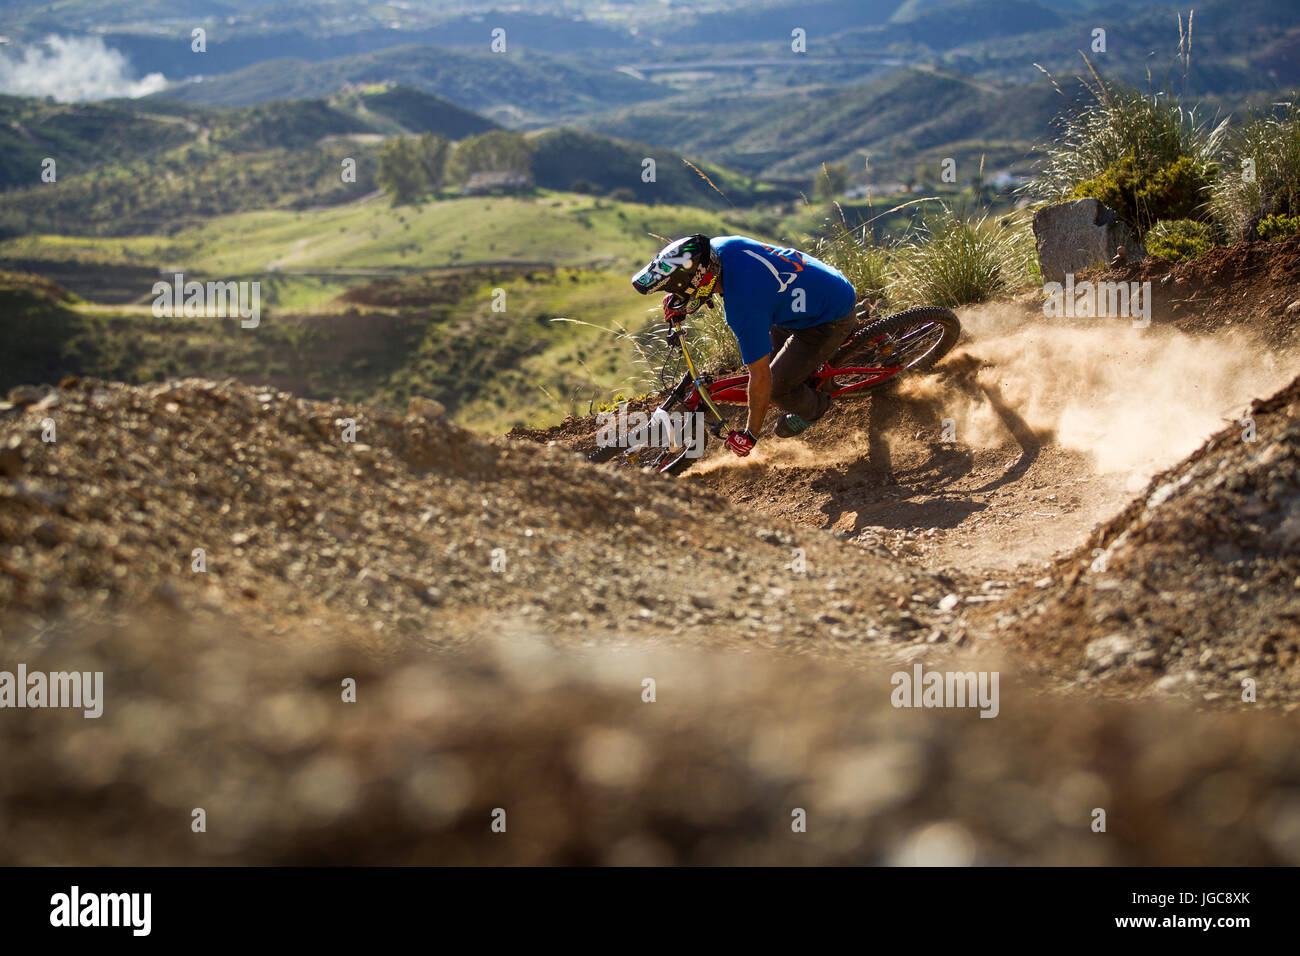 A downhill mountain bike rider slides his bicycle through a corner on a purpose built dusty trail in Andalucia, - Stock Image